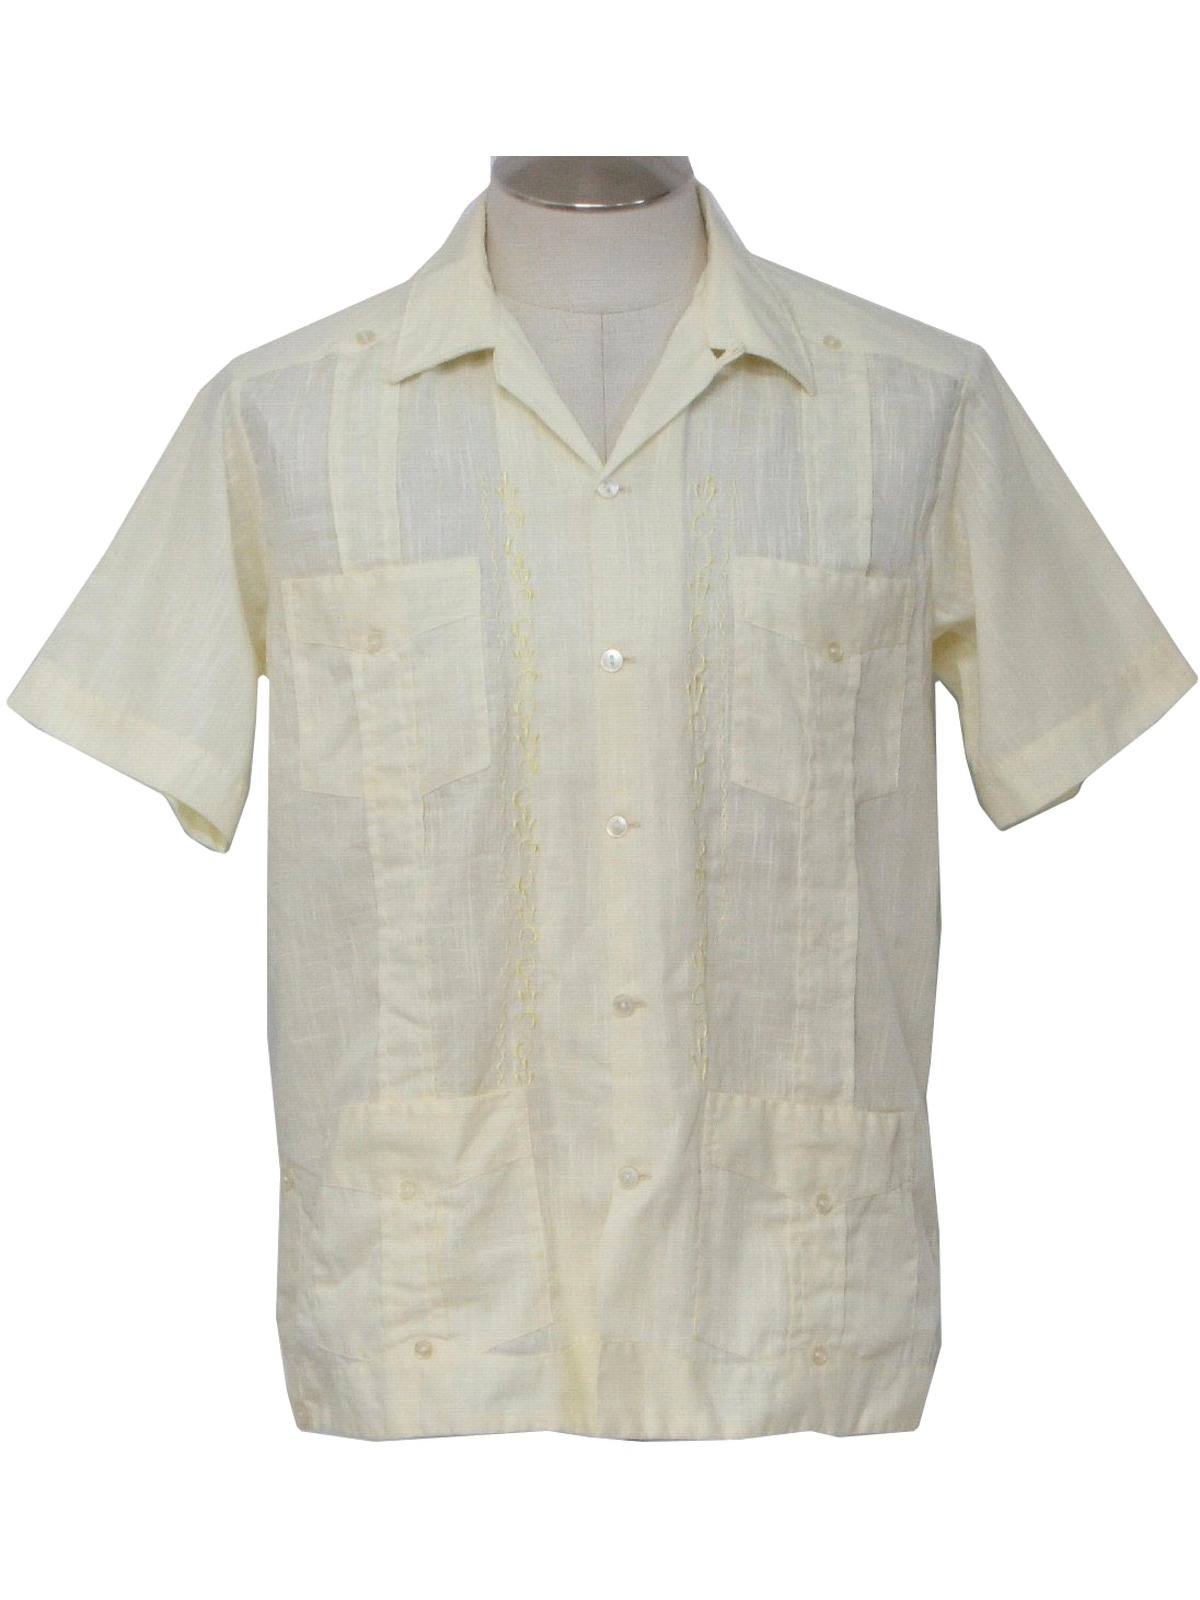 Vintage Yucateca Eighties Guayabera Shirt 80s Yucateca